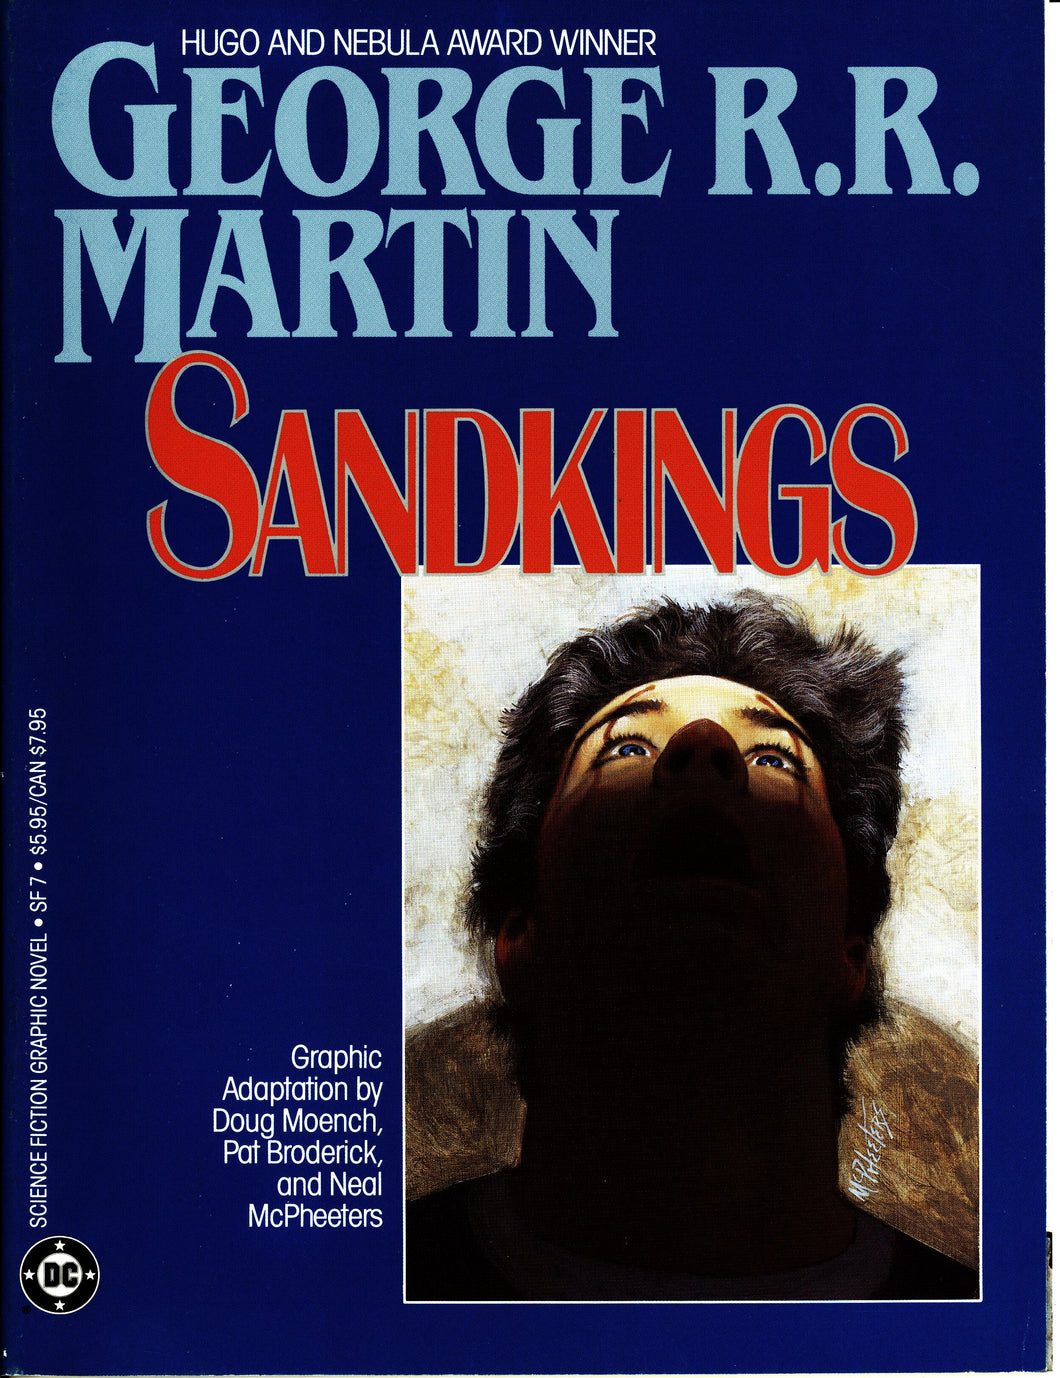 GEORGE R.R. MARTIN SANDKINGS DC GRAPHIC NOVEL- VINTAGE 1987